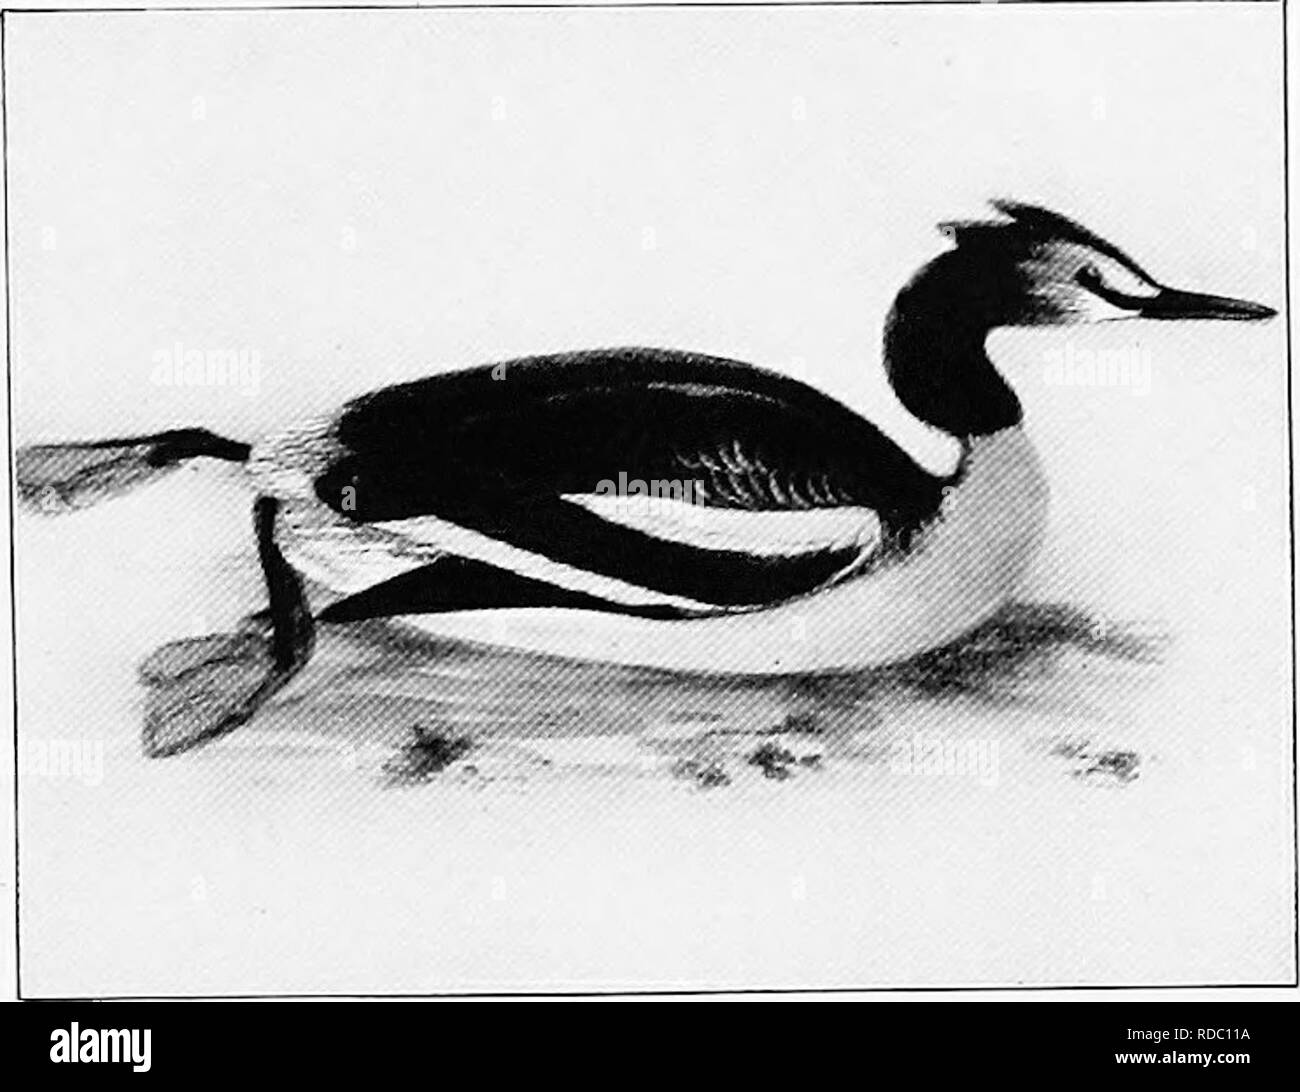 . The birds of Australia. Birds. THE TIPPET GREBE 45 The Tippet Grebe. Podicipes (Lophmtliyia) cristatus. Europe to North Asia, Japan, Indian Peninsula, Africa, New Guinea, Australia, Tasmania, and New Zealand. Colour above dark ash-brown, crown black; feathers on each side of crown elongate and forming a long double crest; throat white tinged with rufous, shading into chestnut at the back of the head; upper neck with long black plumes, forming a ruff, only worn during breeding season; underparts silvery white; sides rufous chestnut; lesser wing coverts white. Total length about 20 inches, cul - Stock Image